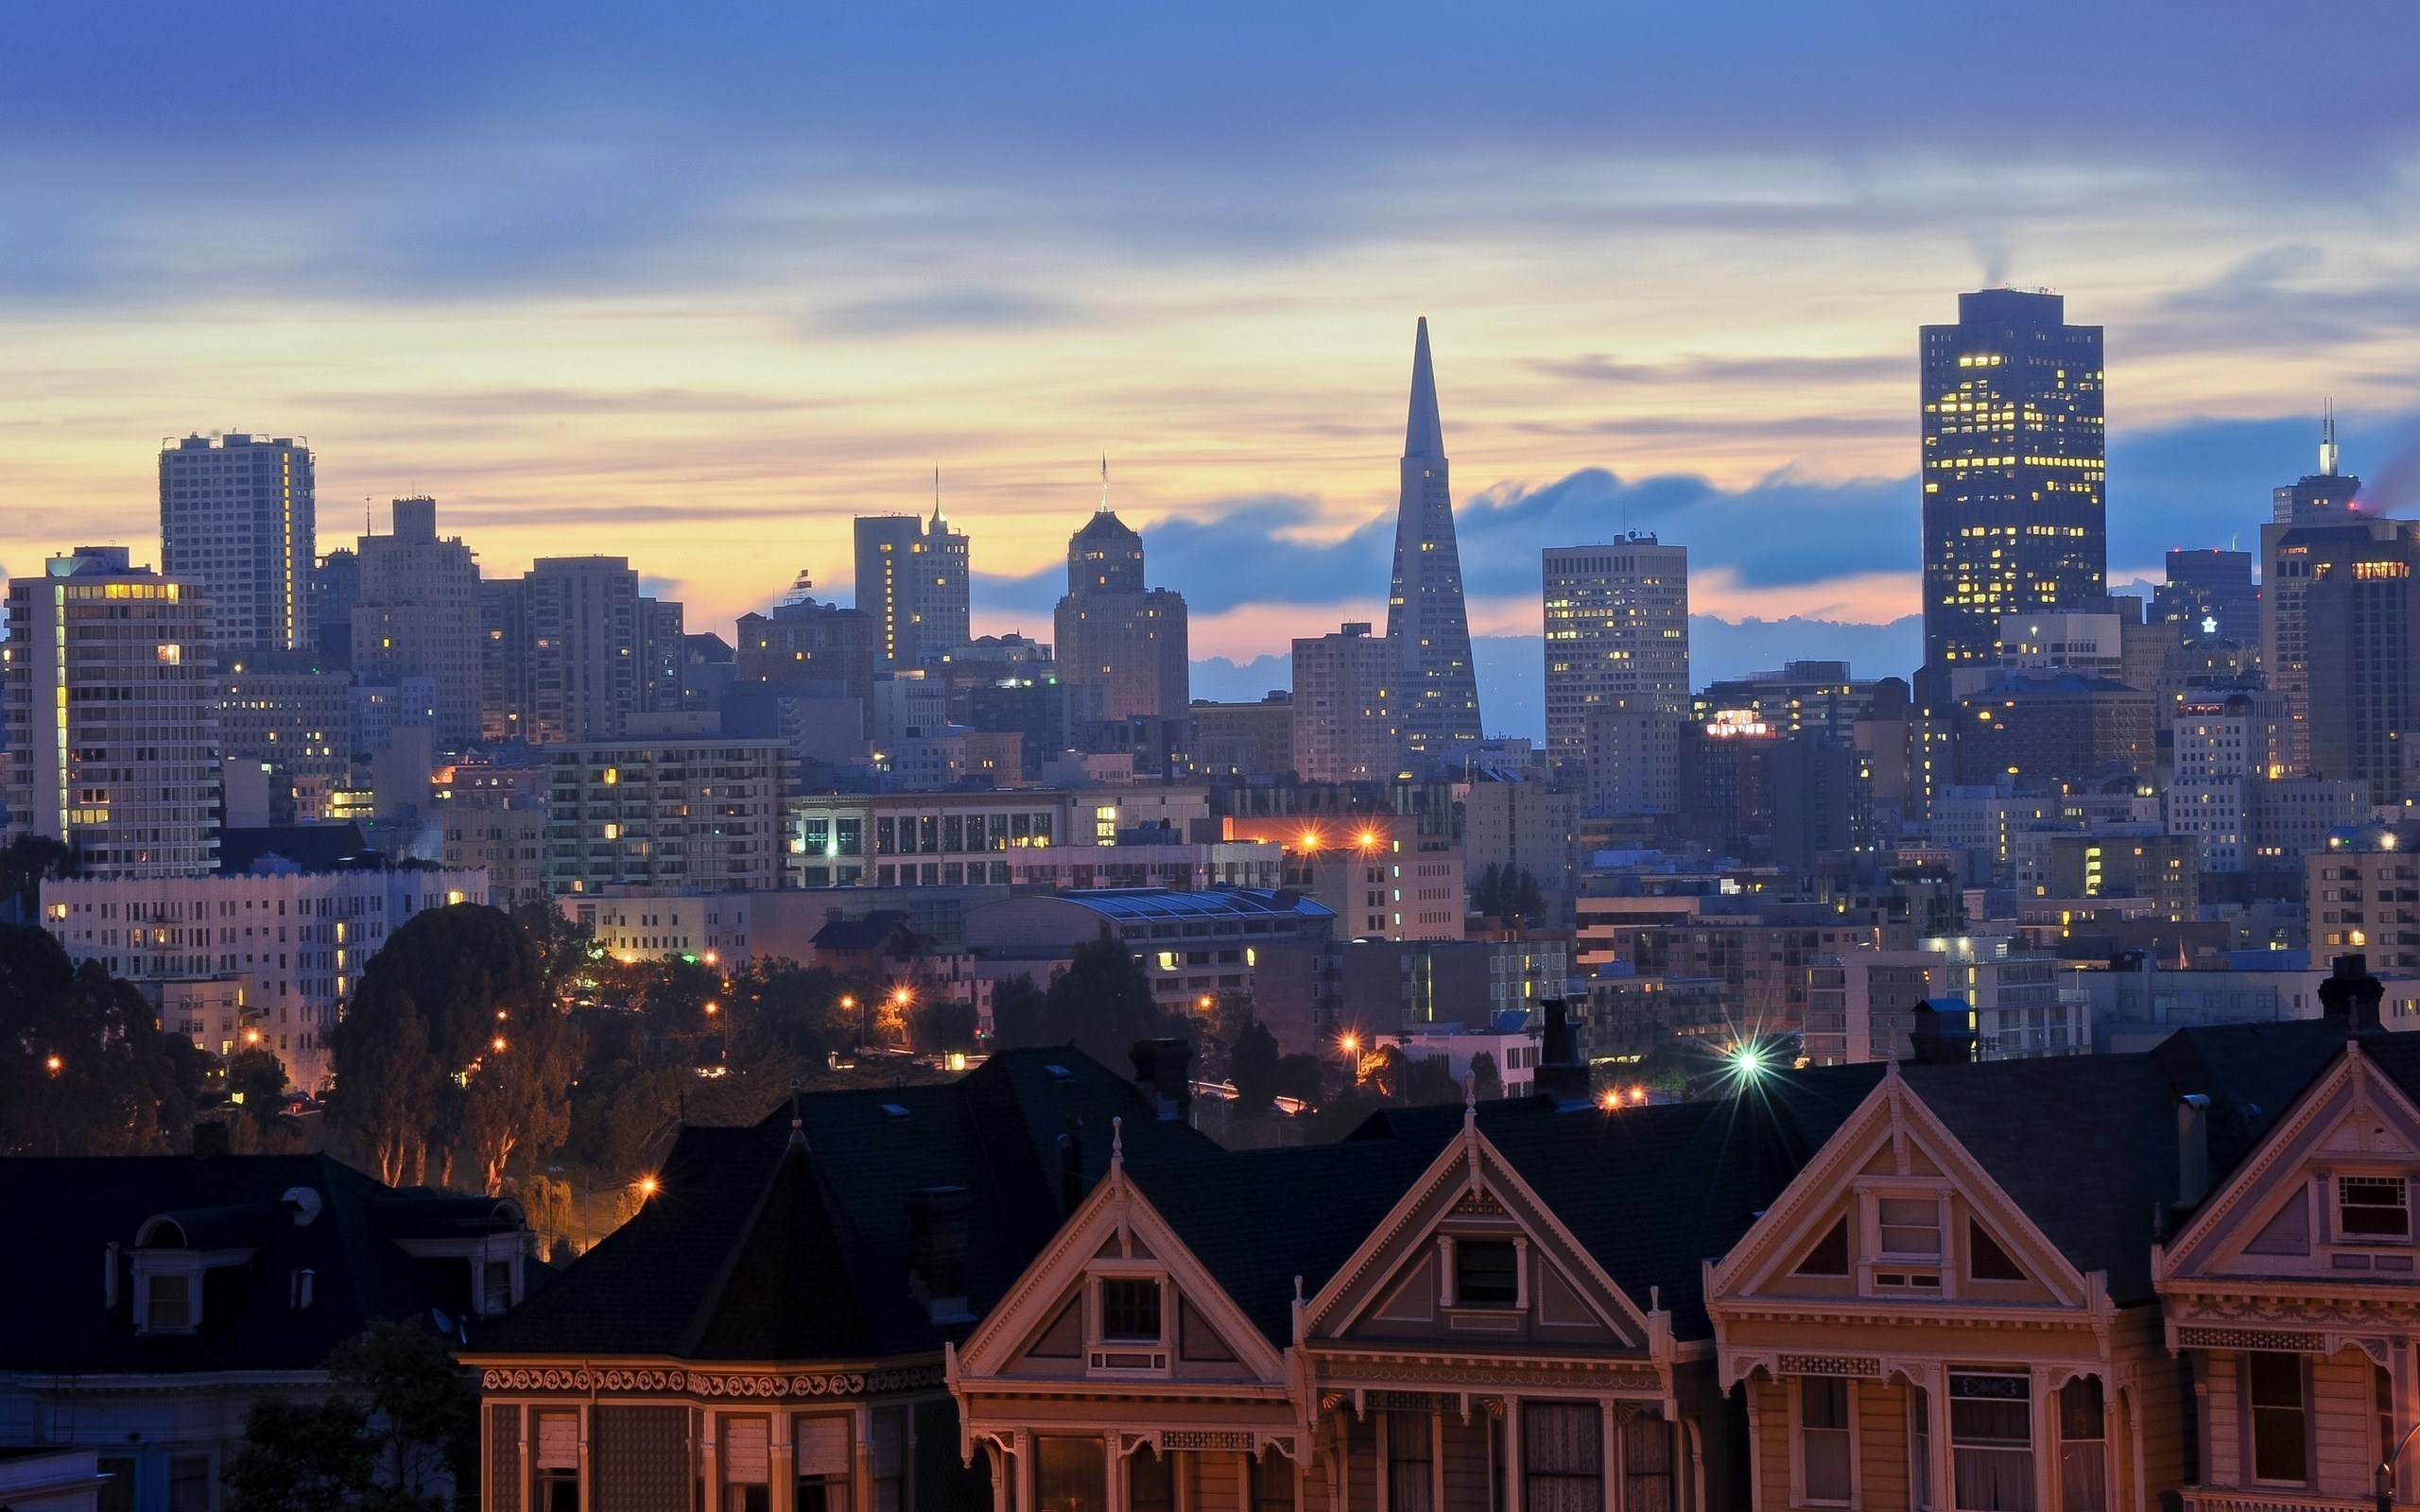 san-francisco-4k-hd-wallpapers-unabuenaidea.es (16)